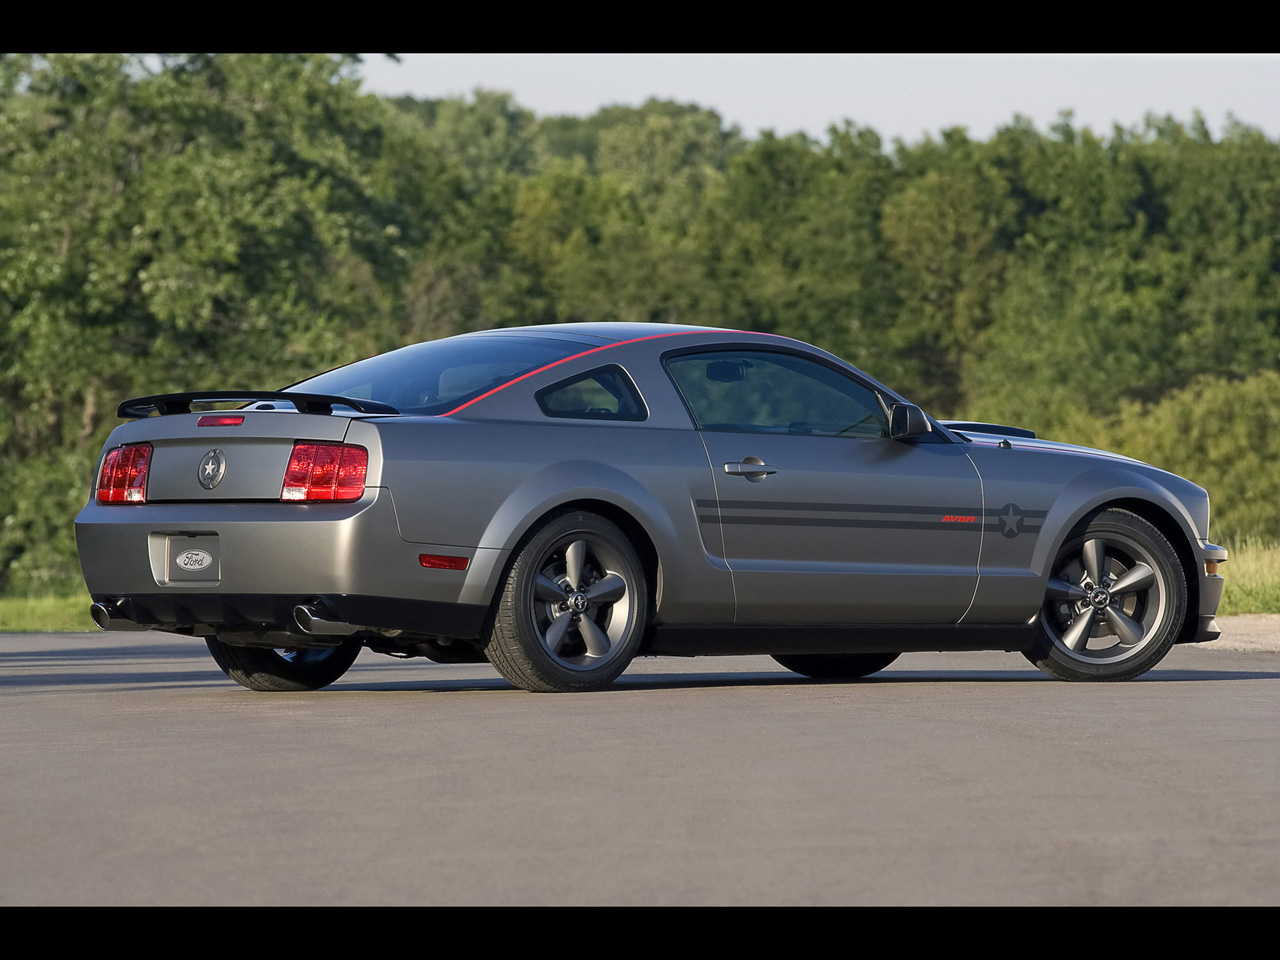 2009 ford mustang image 15